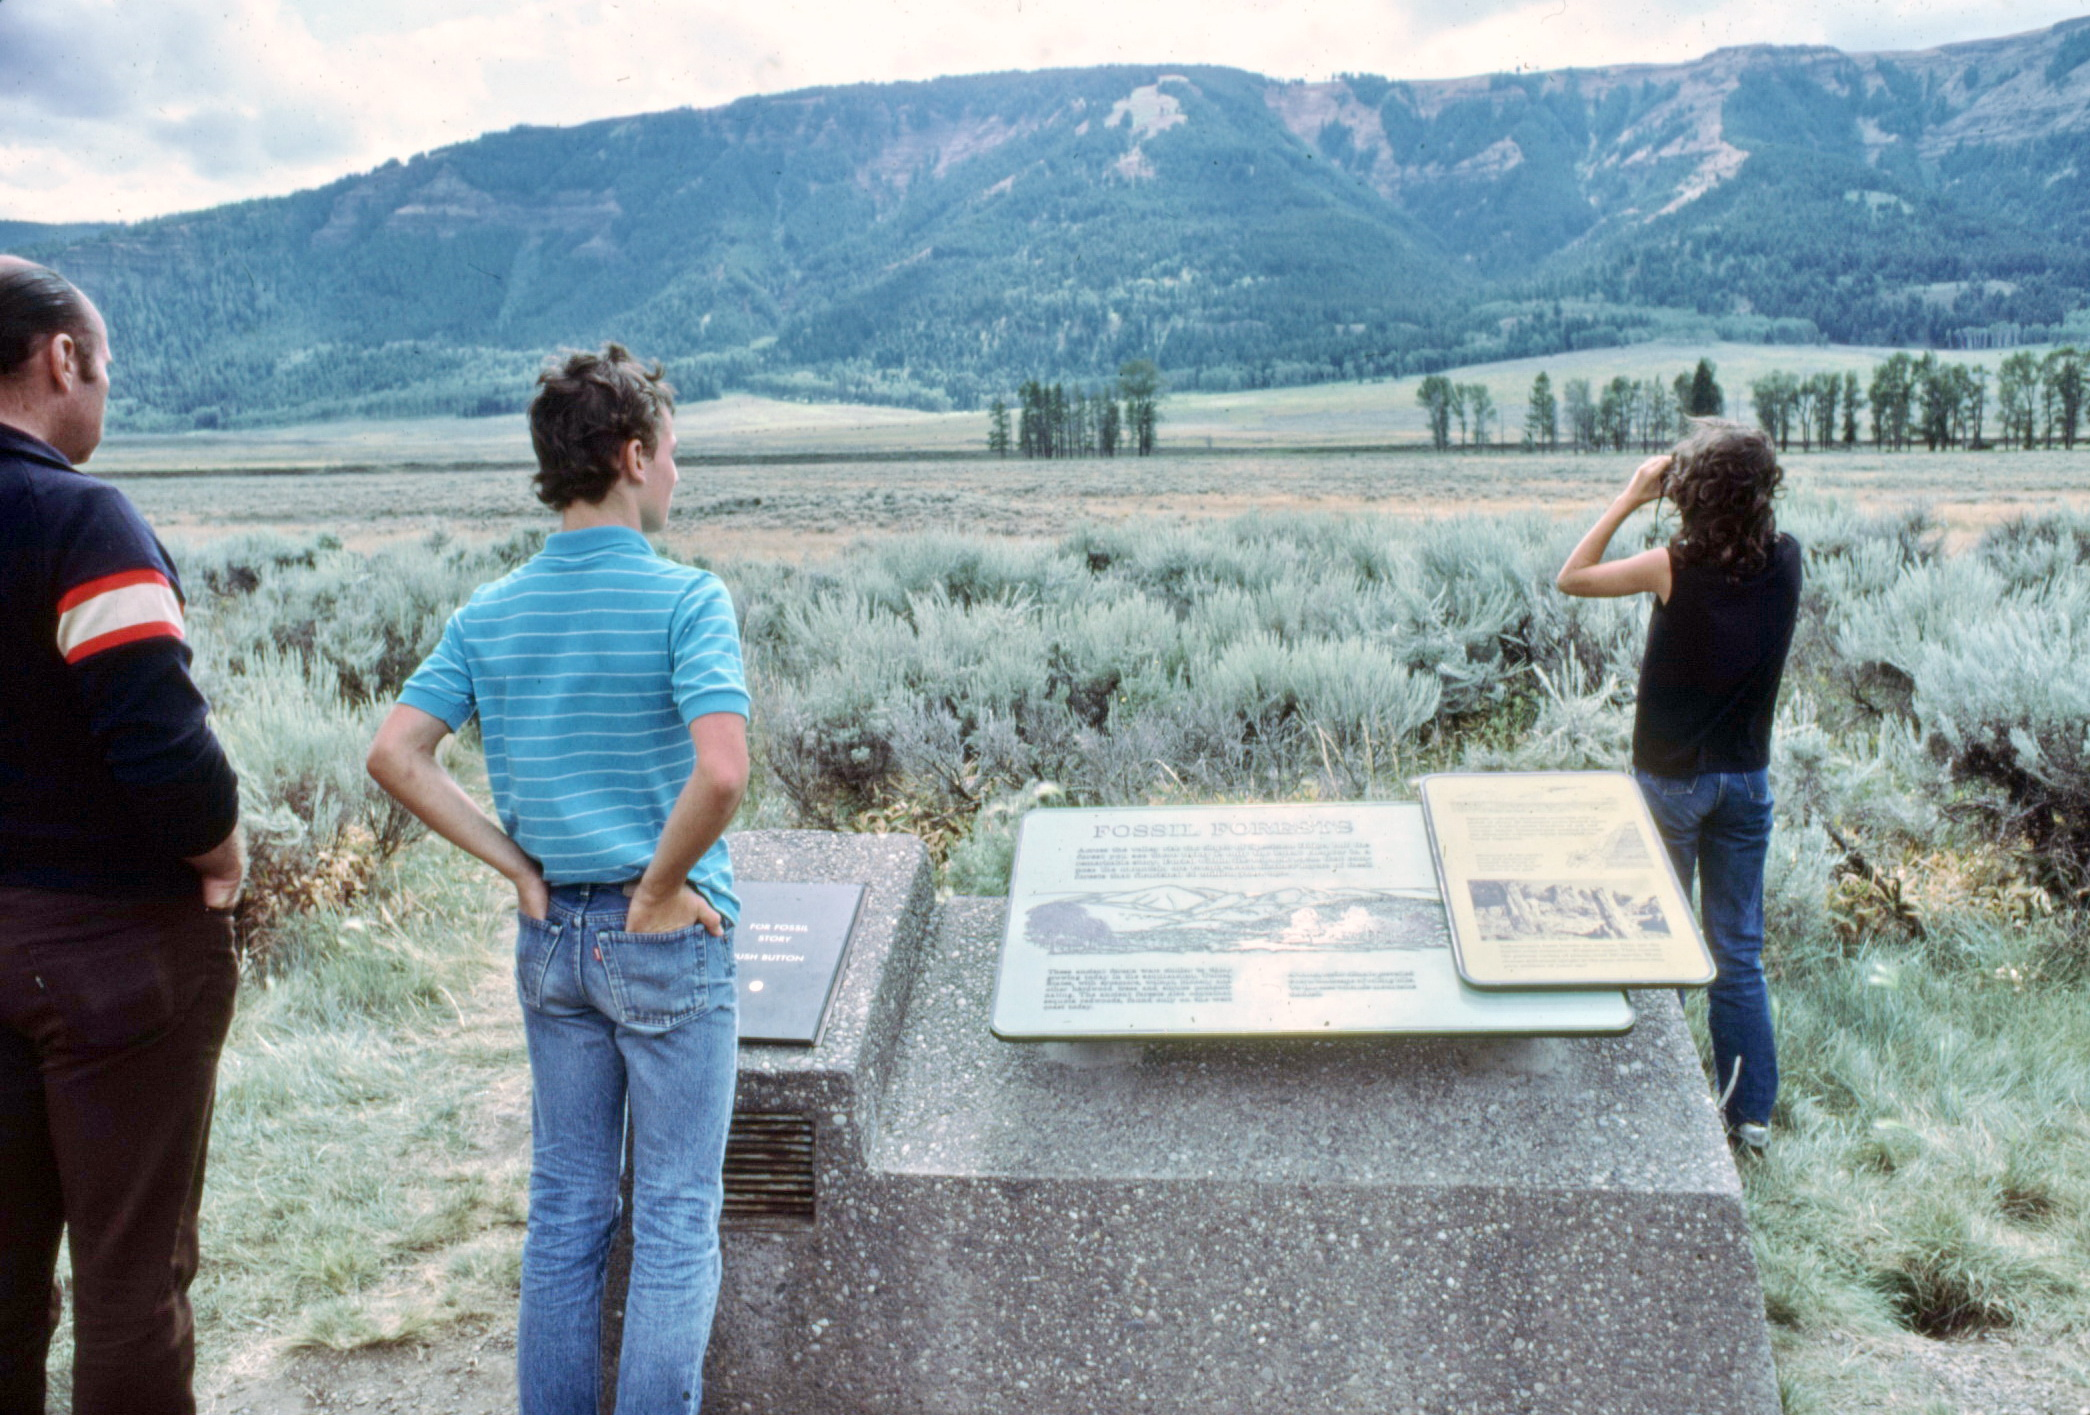 1983 photo of Yellowstone Specimen Ridge exhibit sign